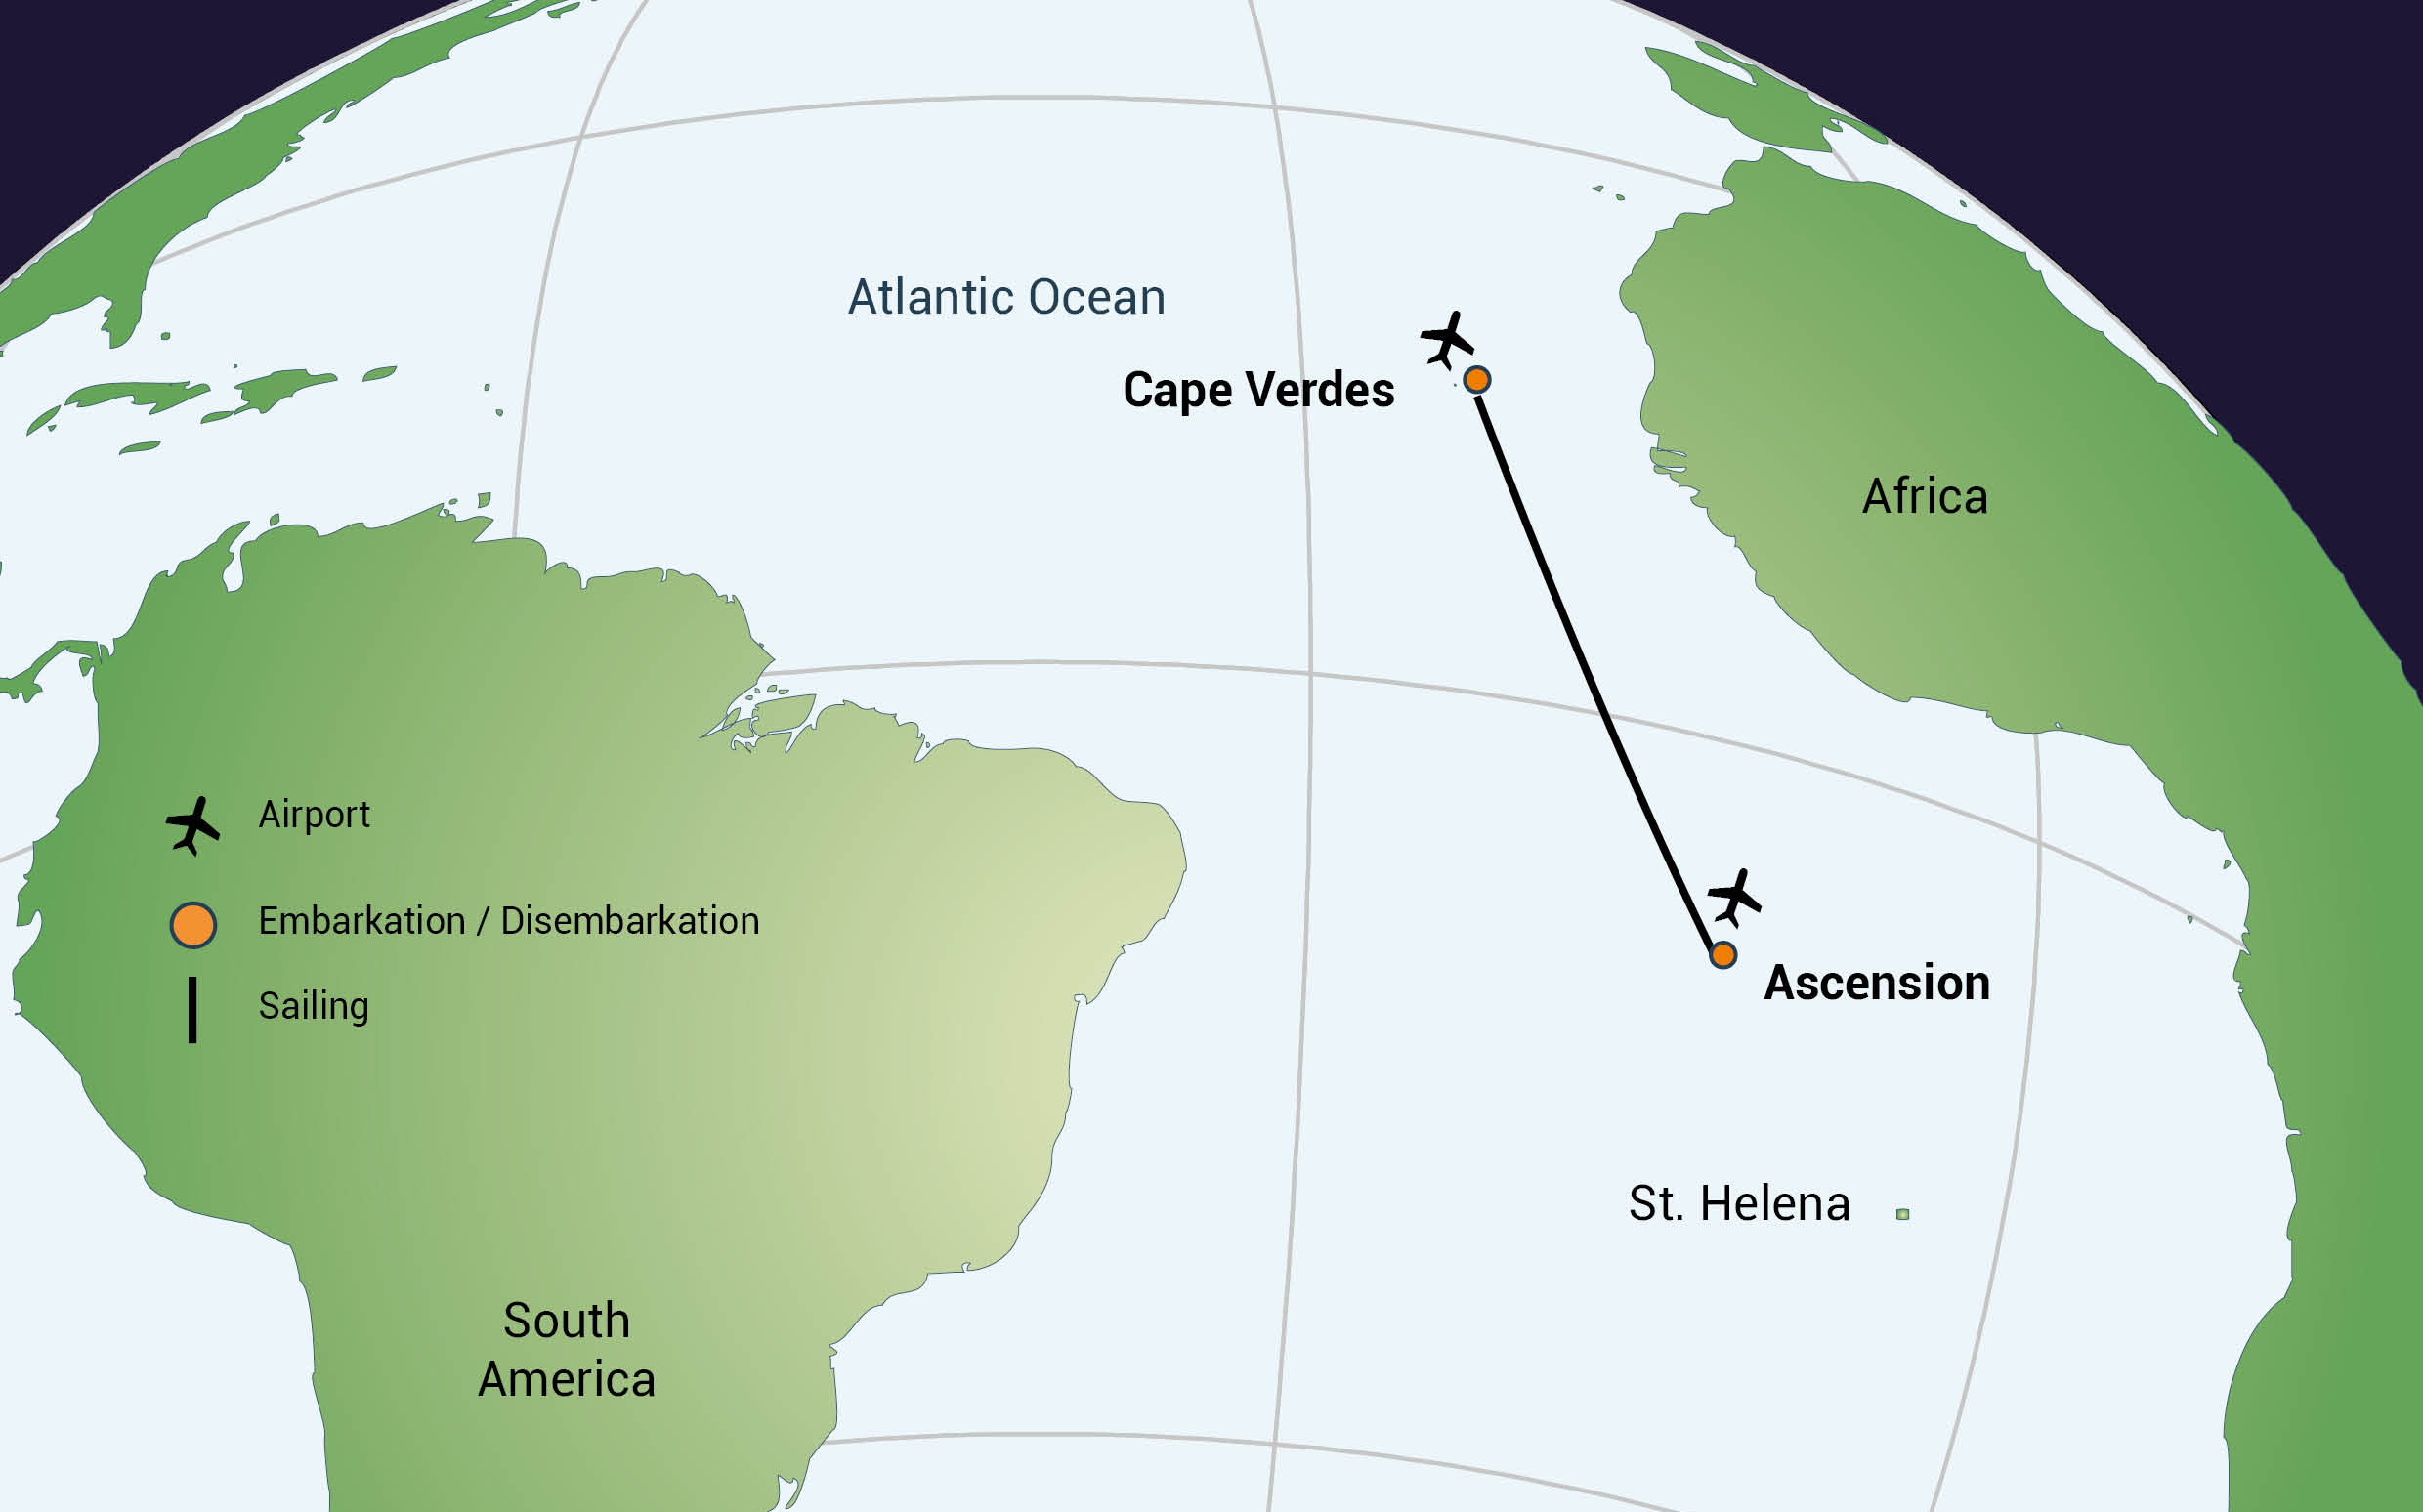 From Ascension Island to Praia